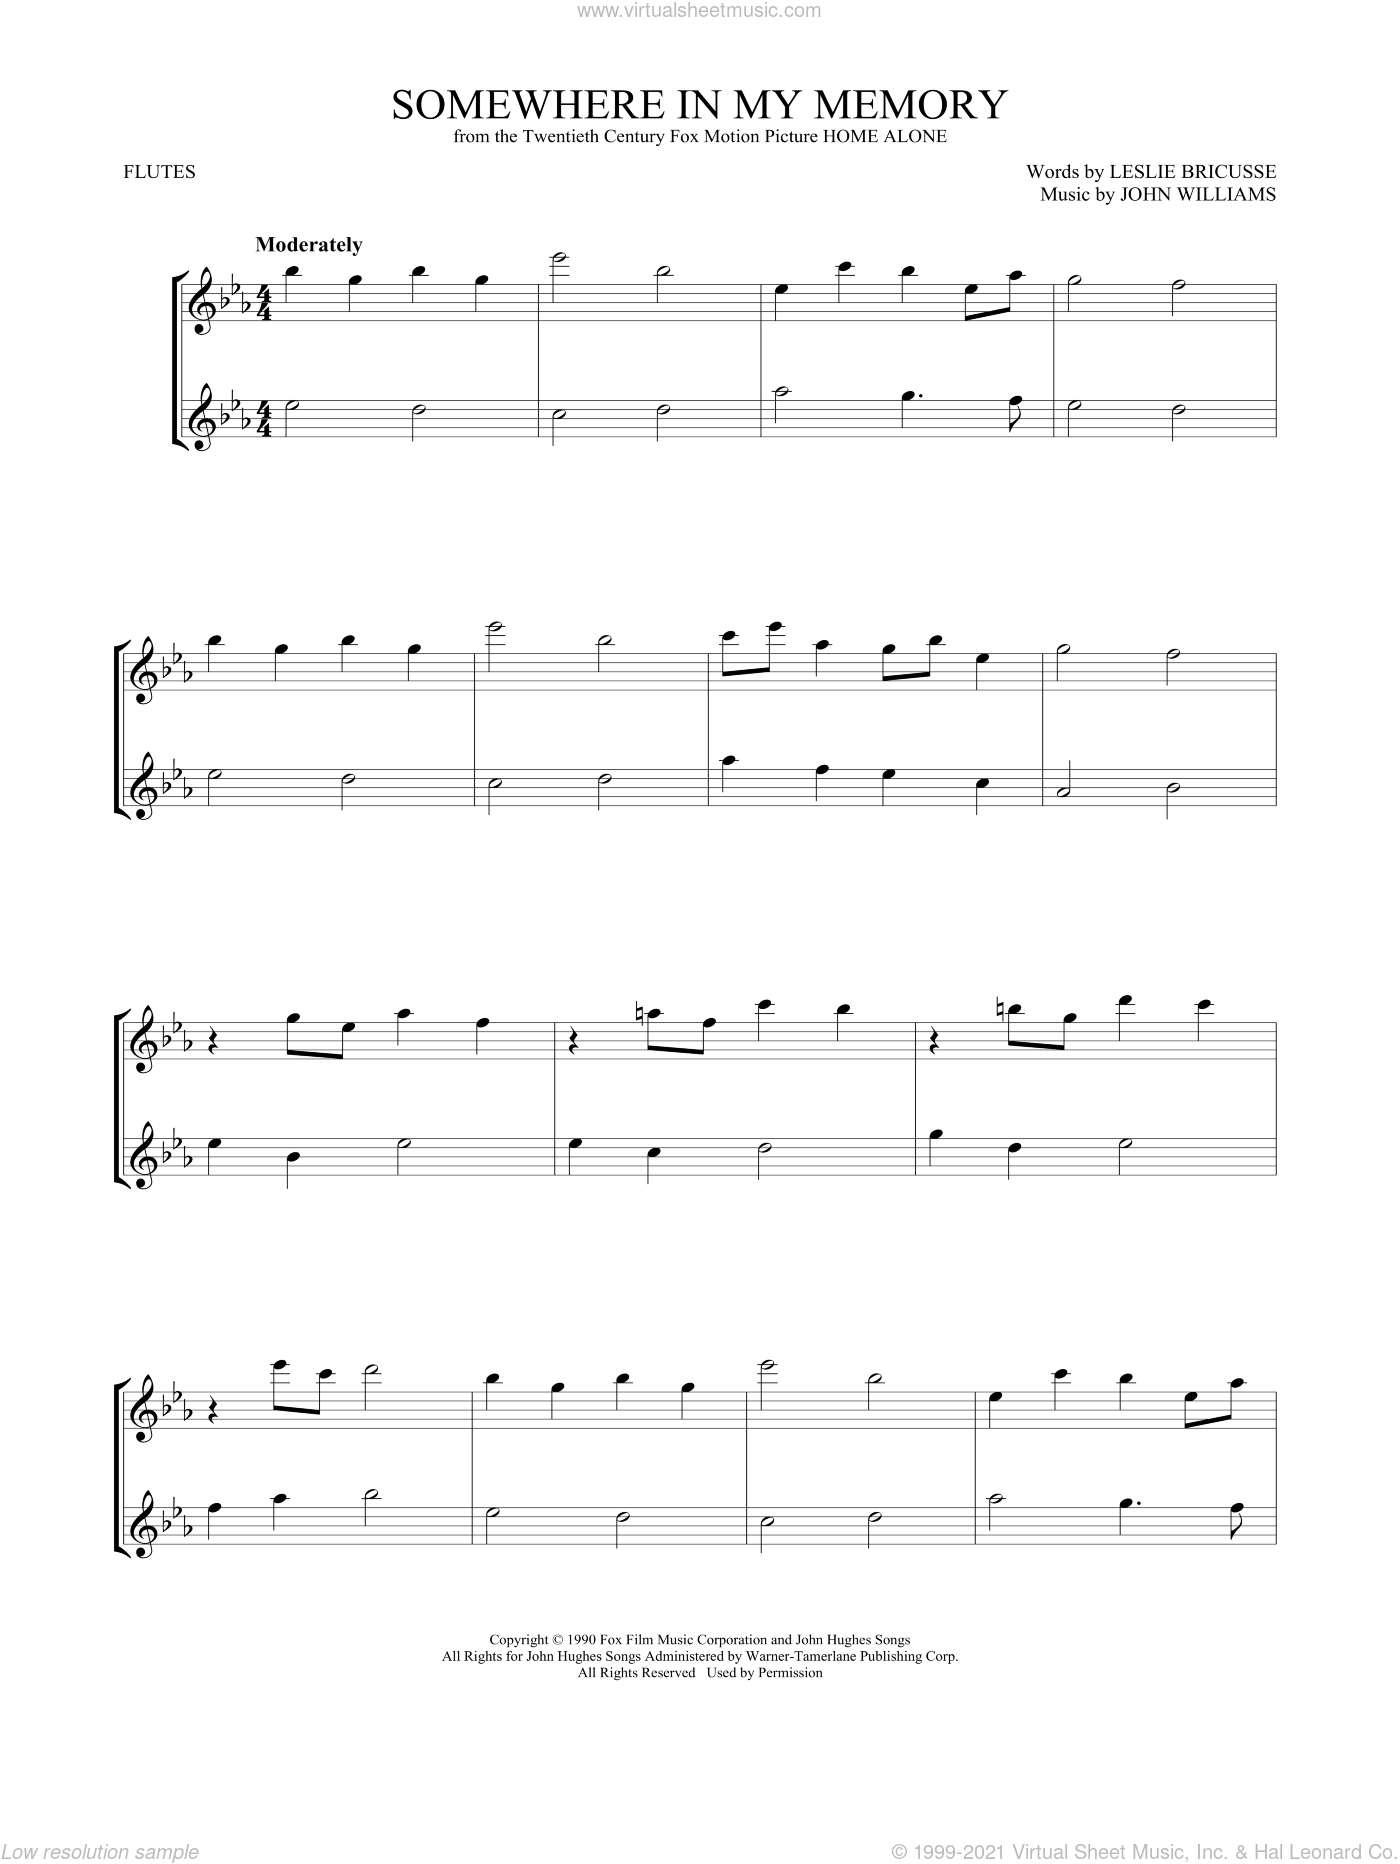 Somewhere In My Memory sheet music for two flutes (duets) by John Williams, intermediate skill level